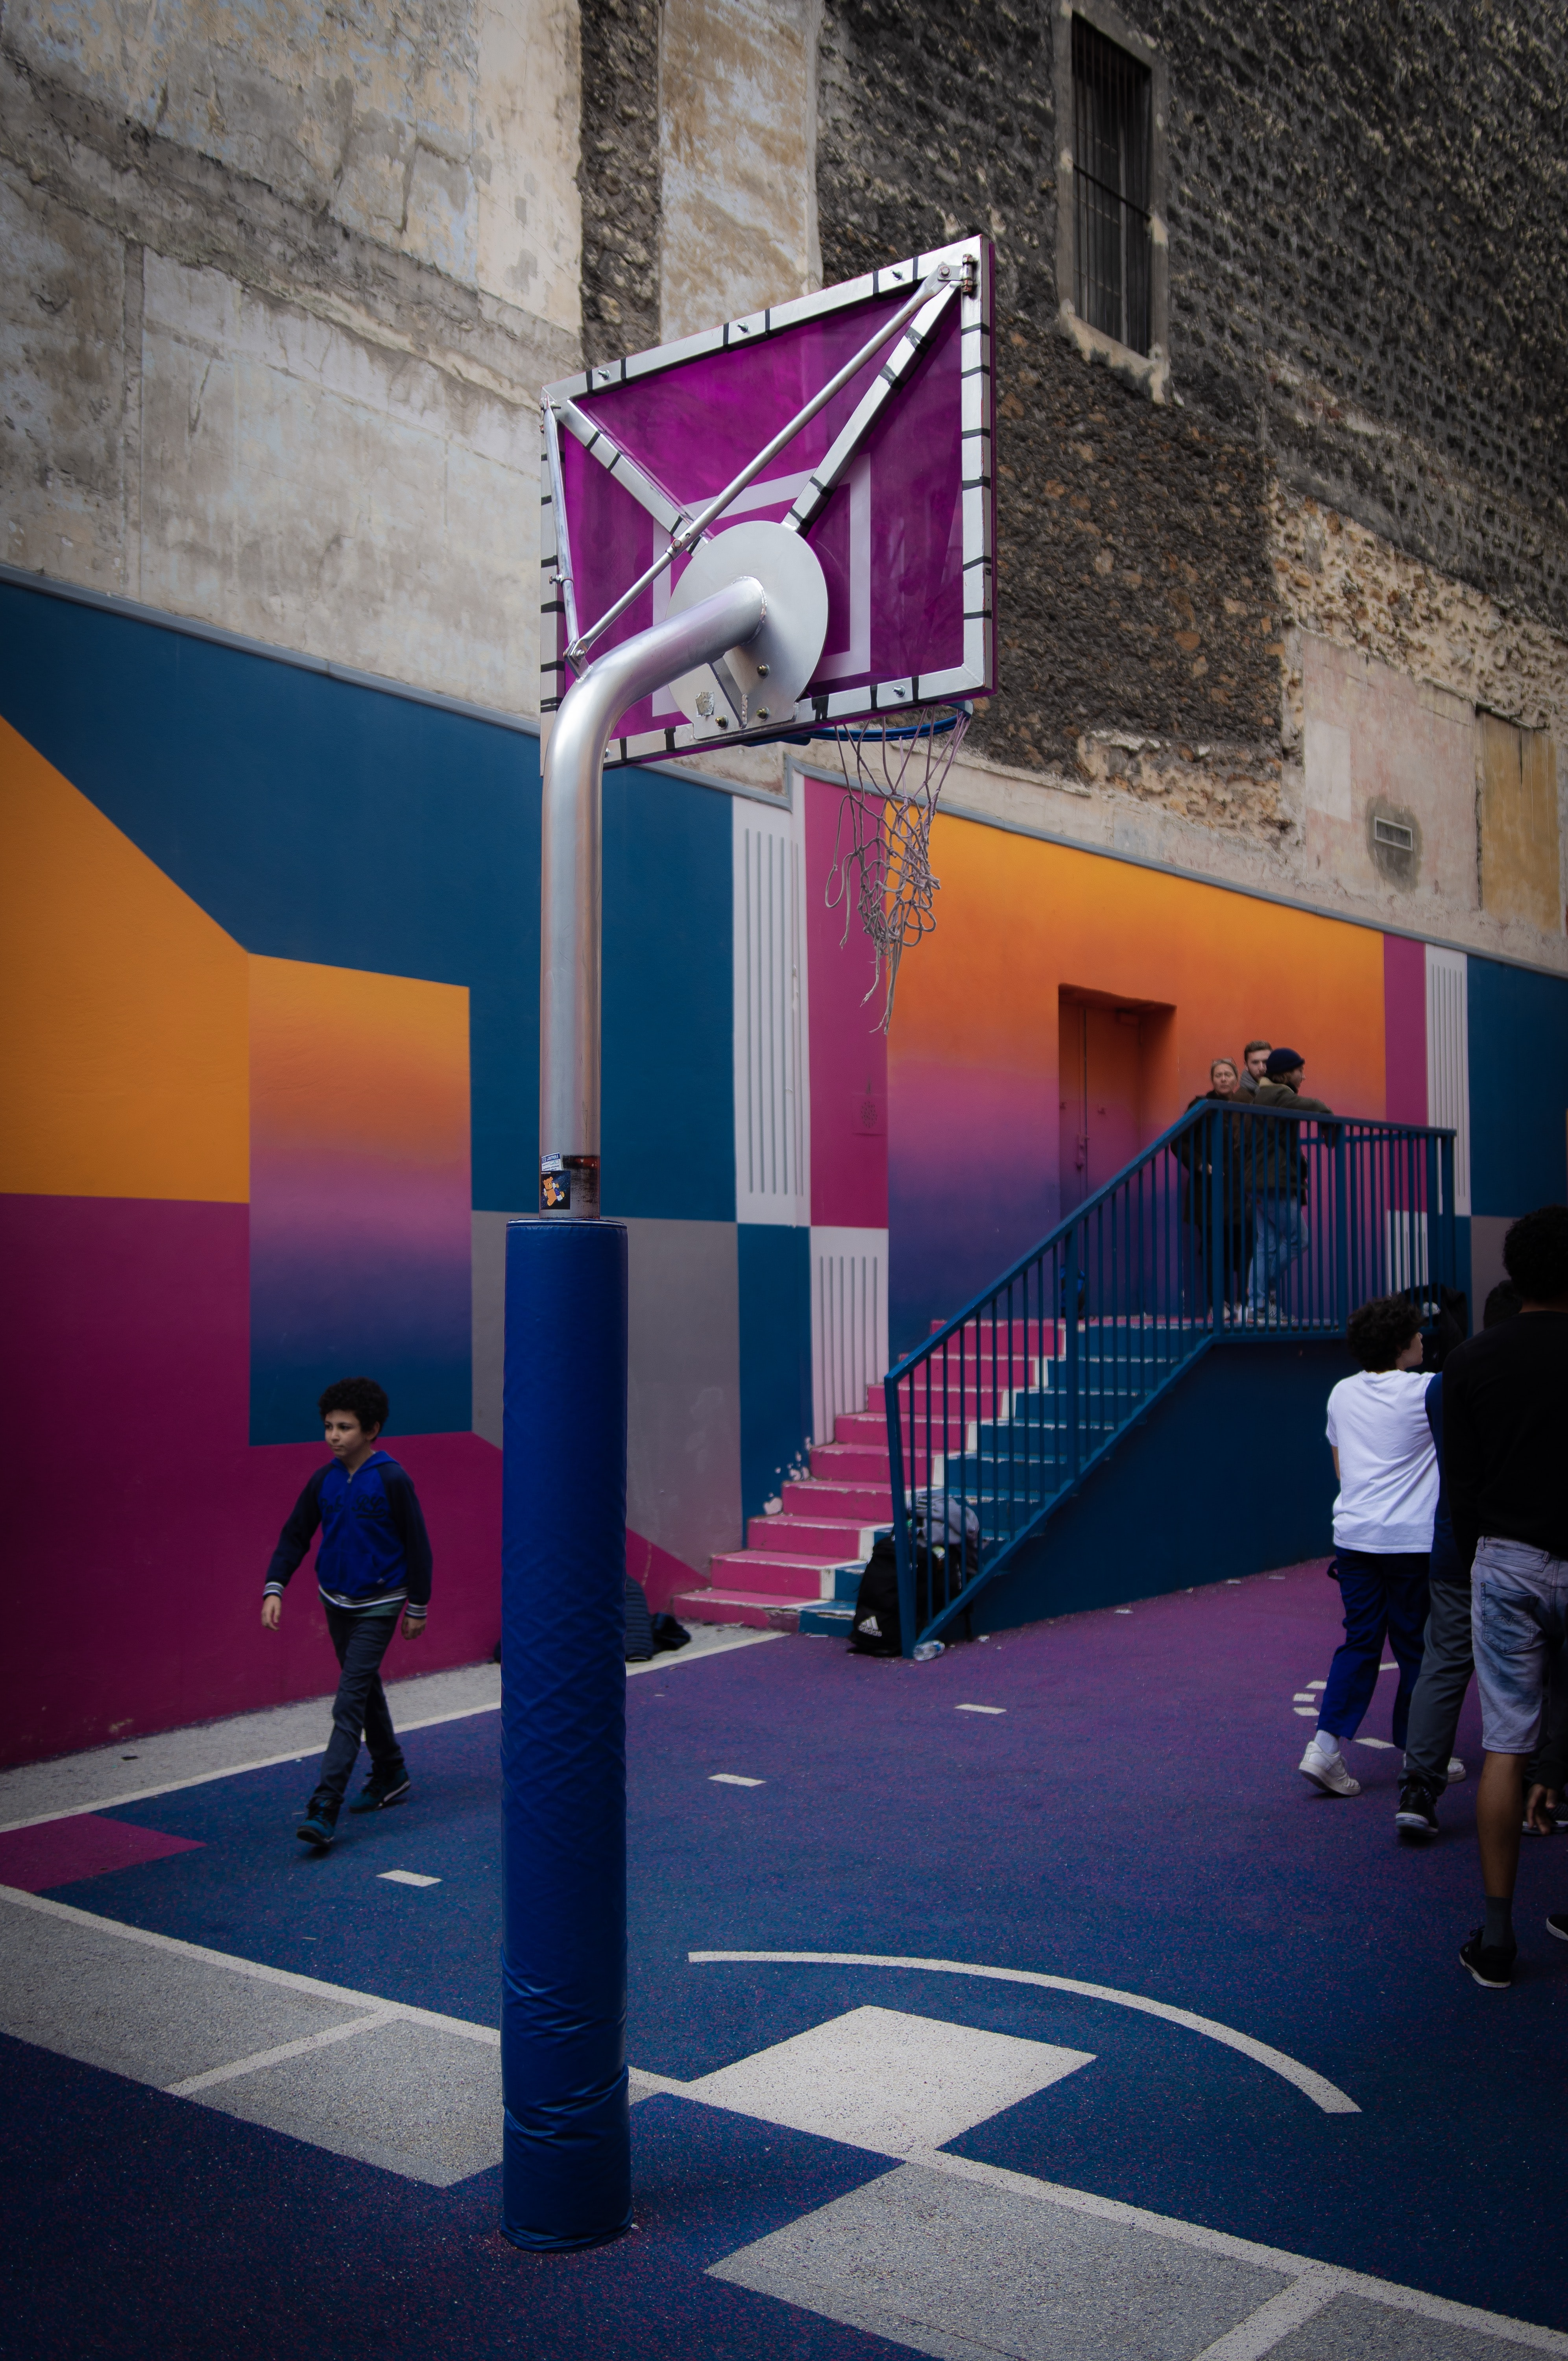 people standing in basketball court